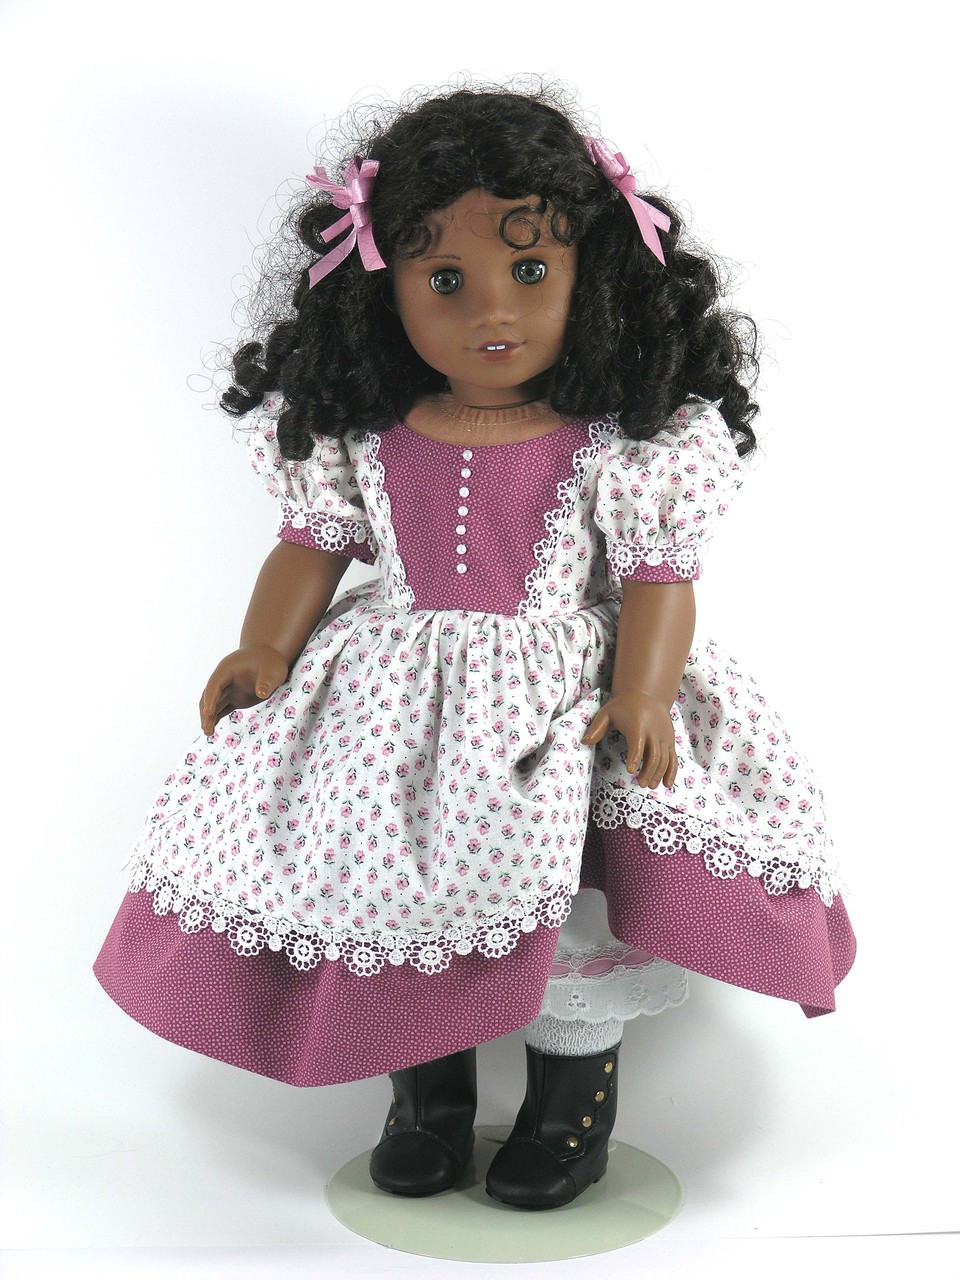 Handmade 1850s American Girl Cecile Historical Doll Dress - Rosey Mauve